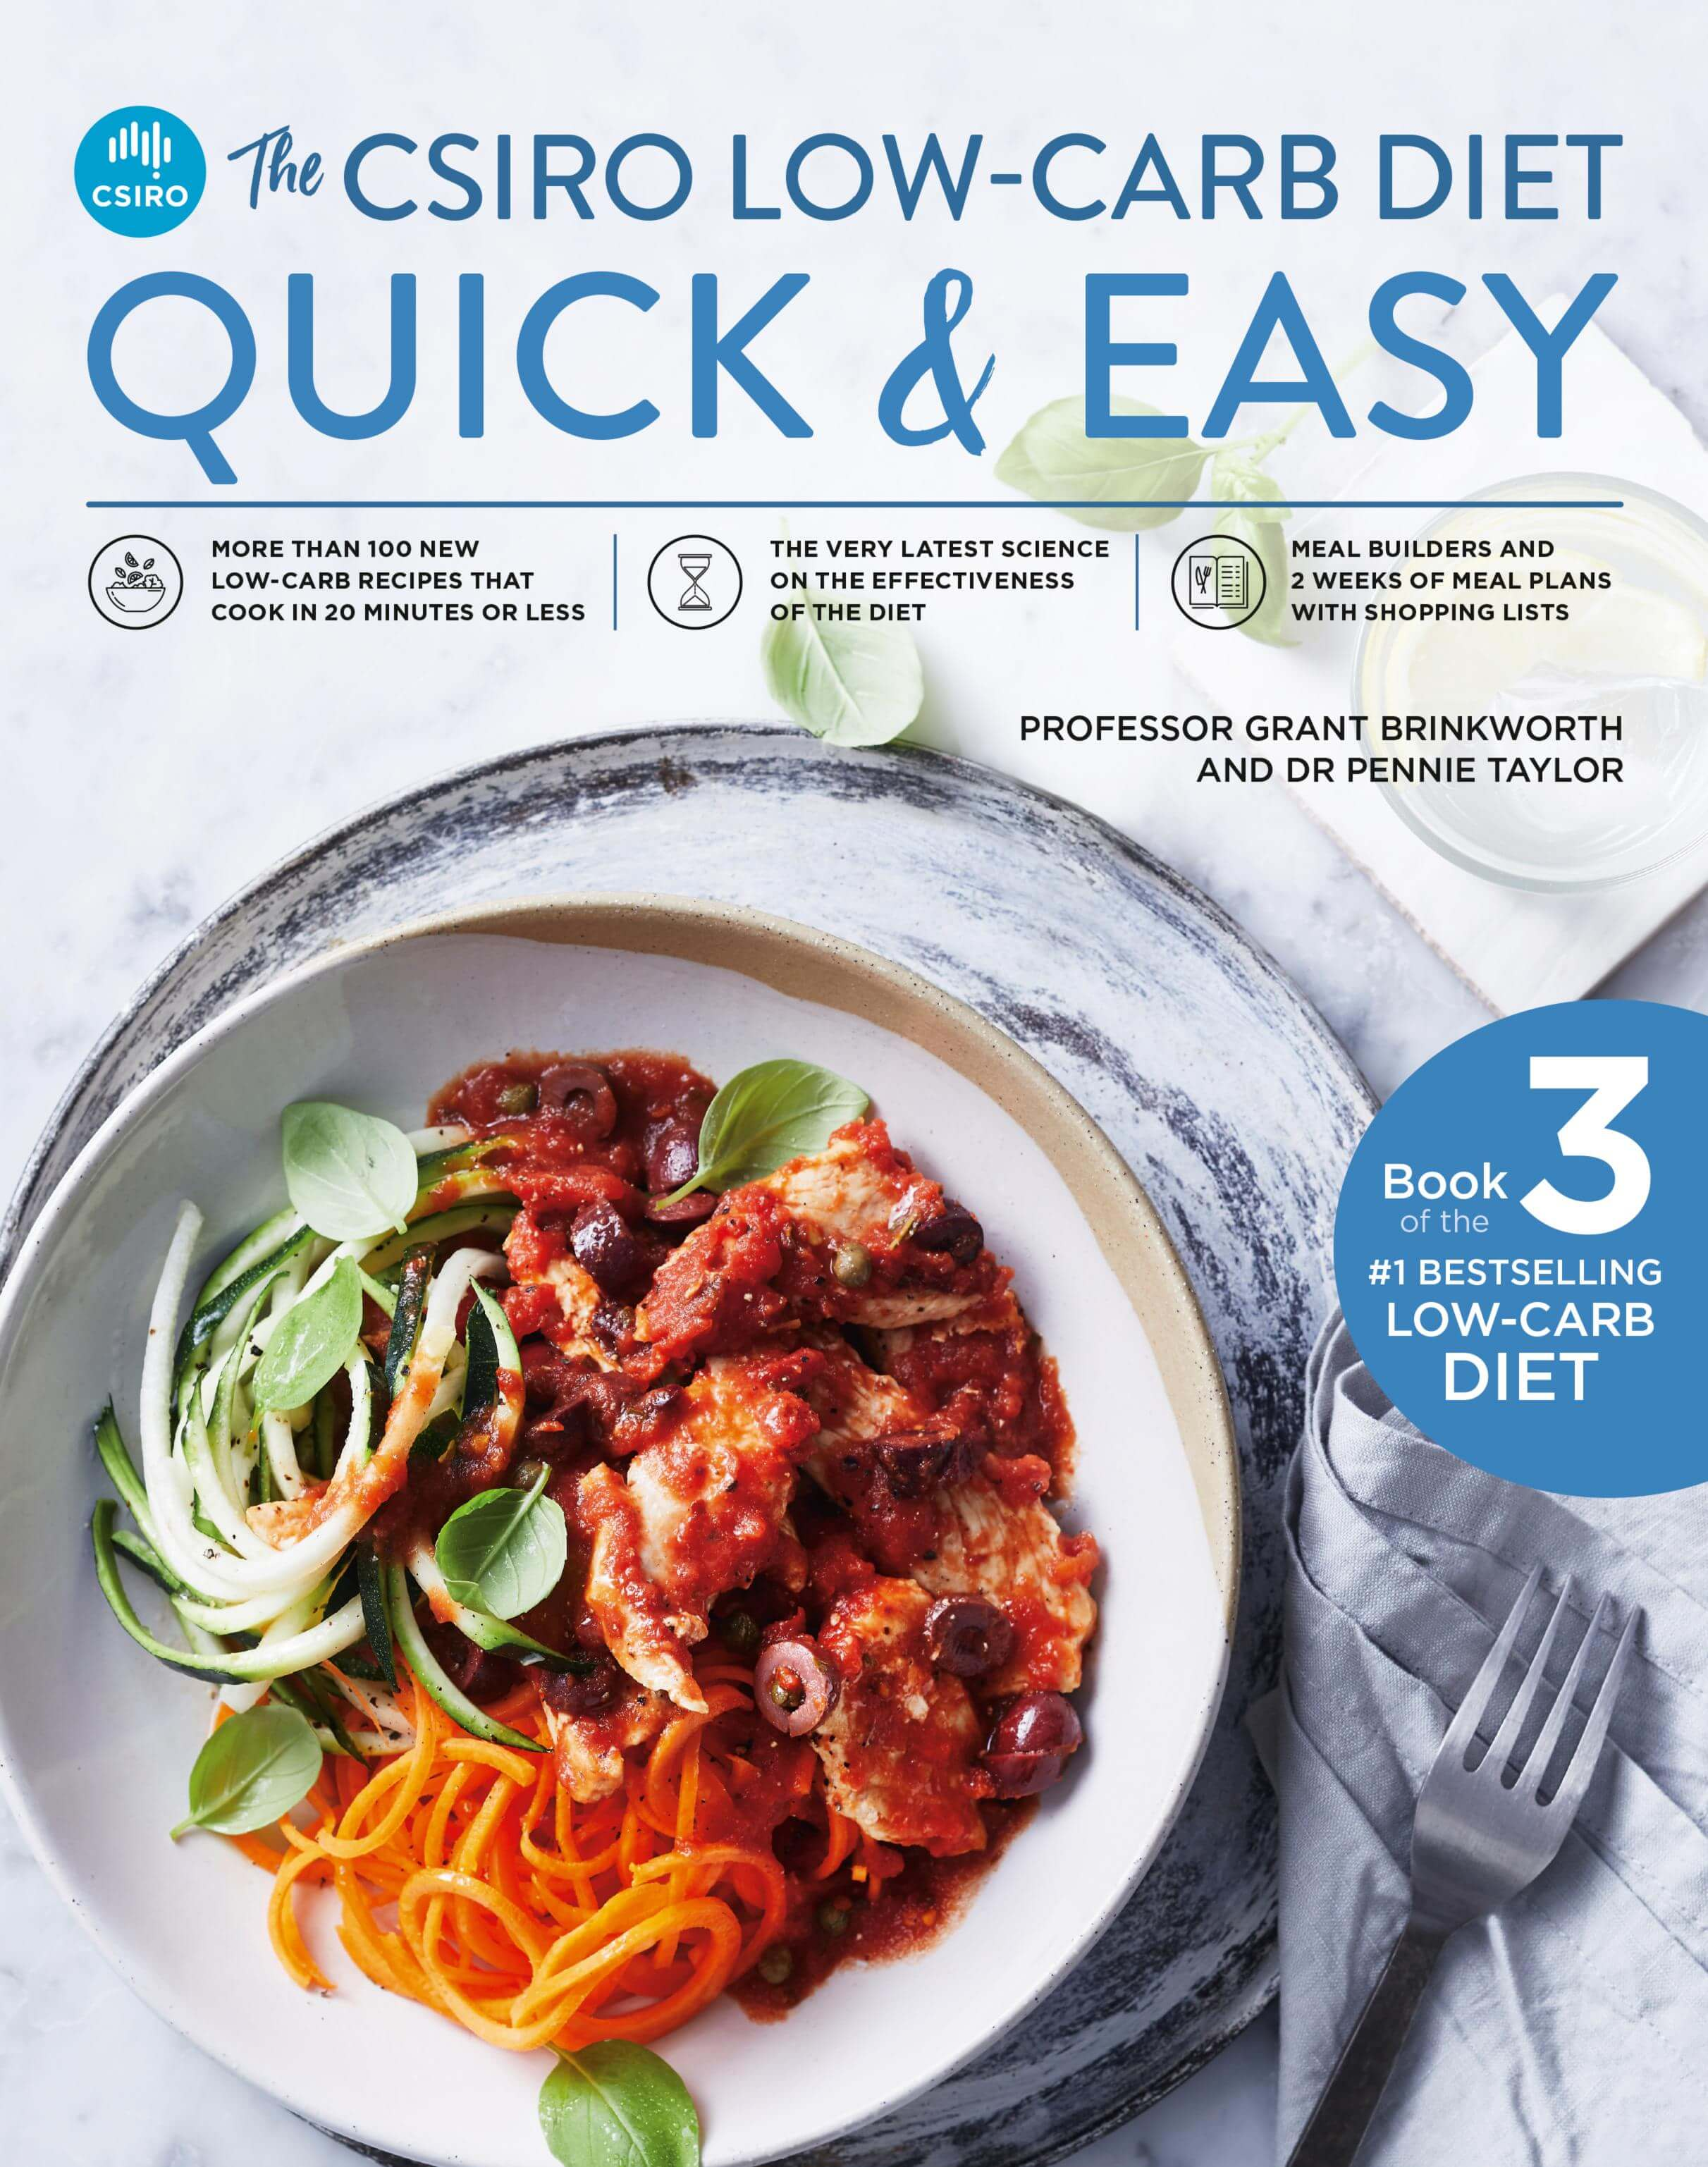 Image of The CSIRO Low-Carb Diet Quick and Easy bookcover